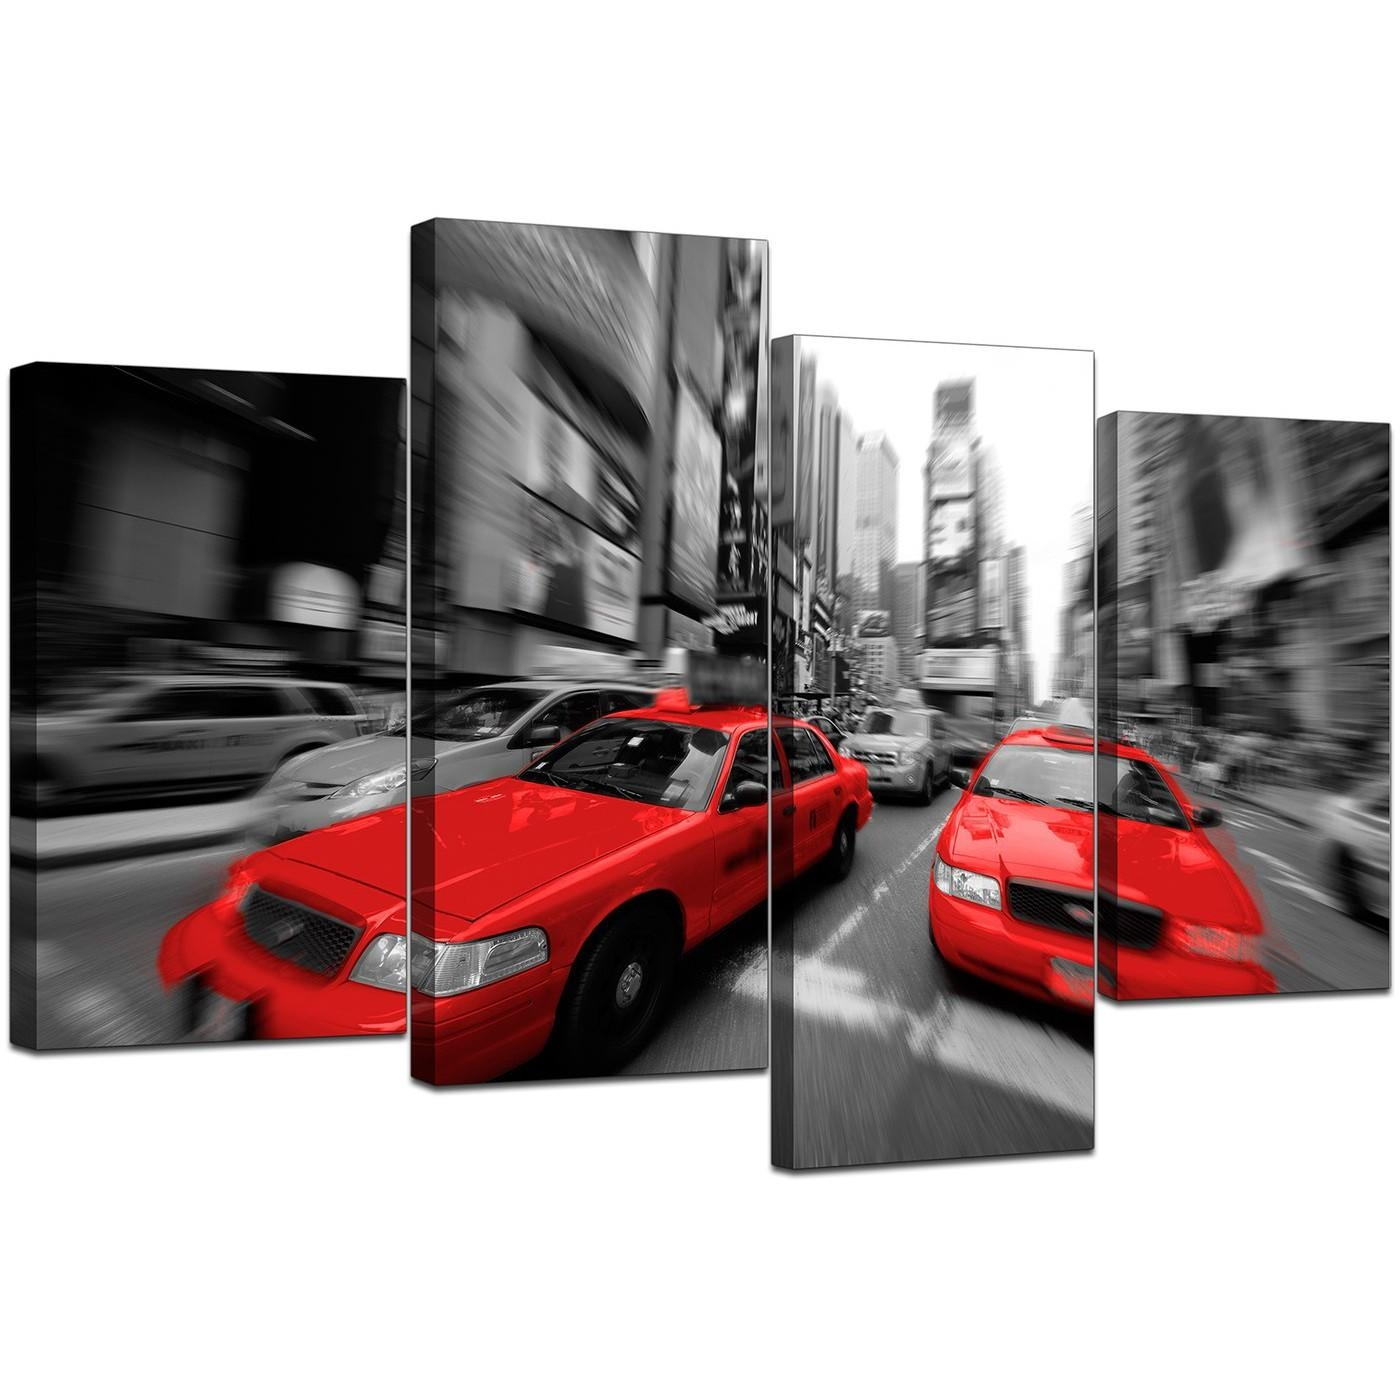 New York Canvas Prints In Black White & Red – For Living Room Regarding Red And Black Canvas Wall Art (View 7 of 20)